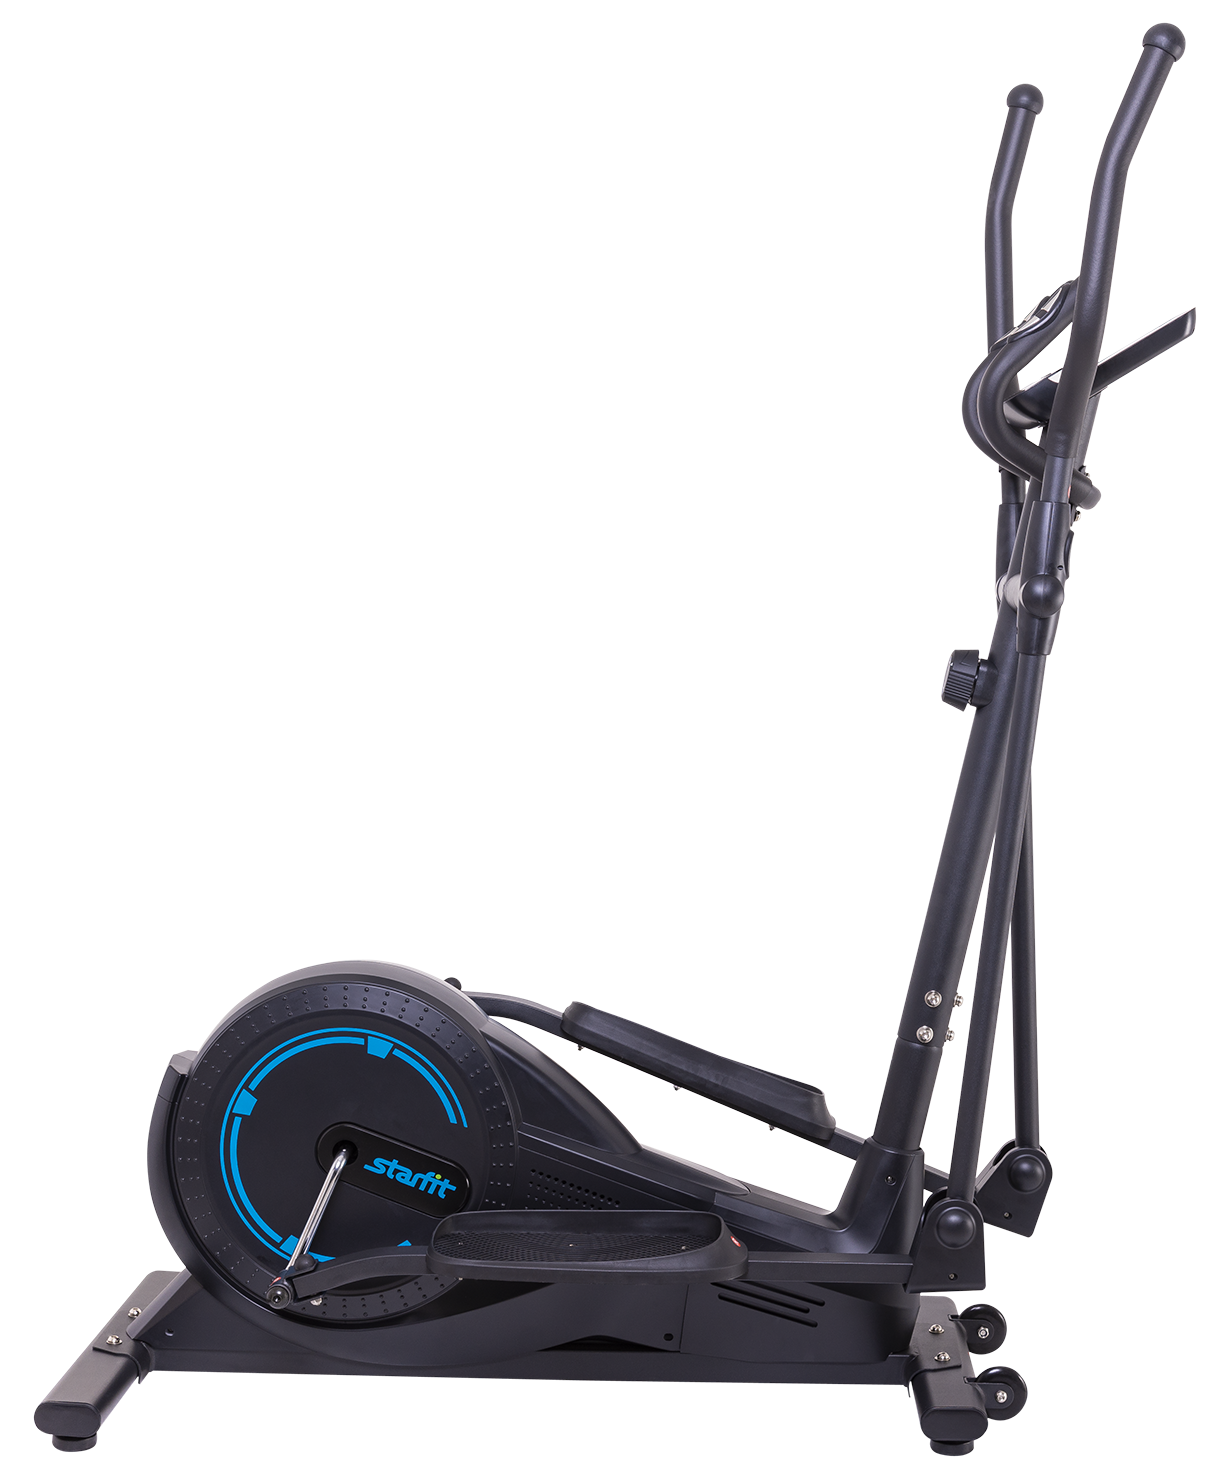 uploads gym equipment gym equipment PNG39 4